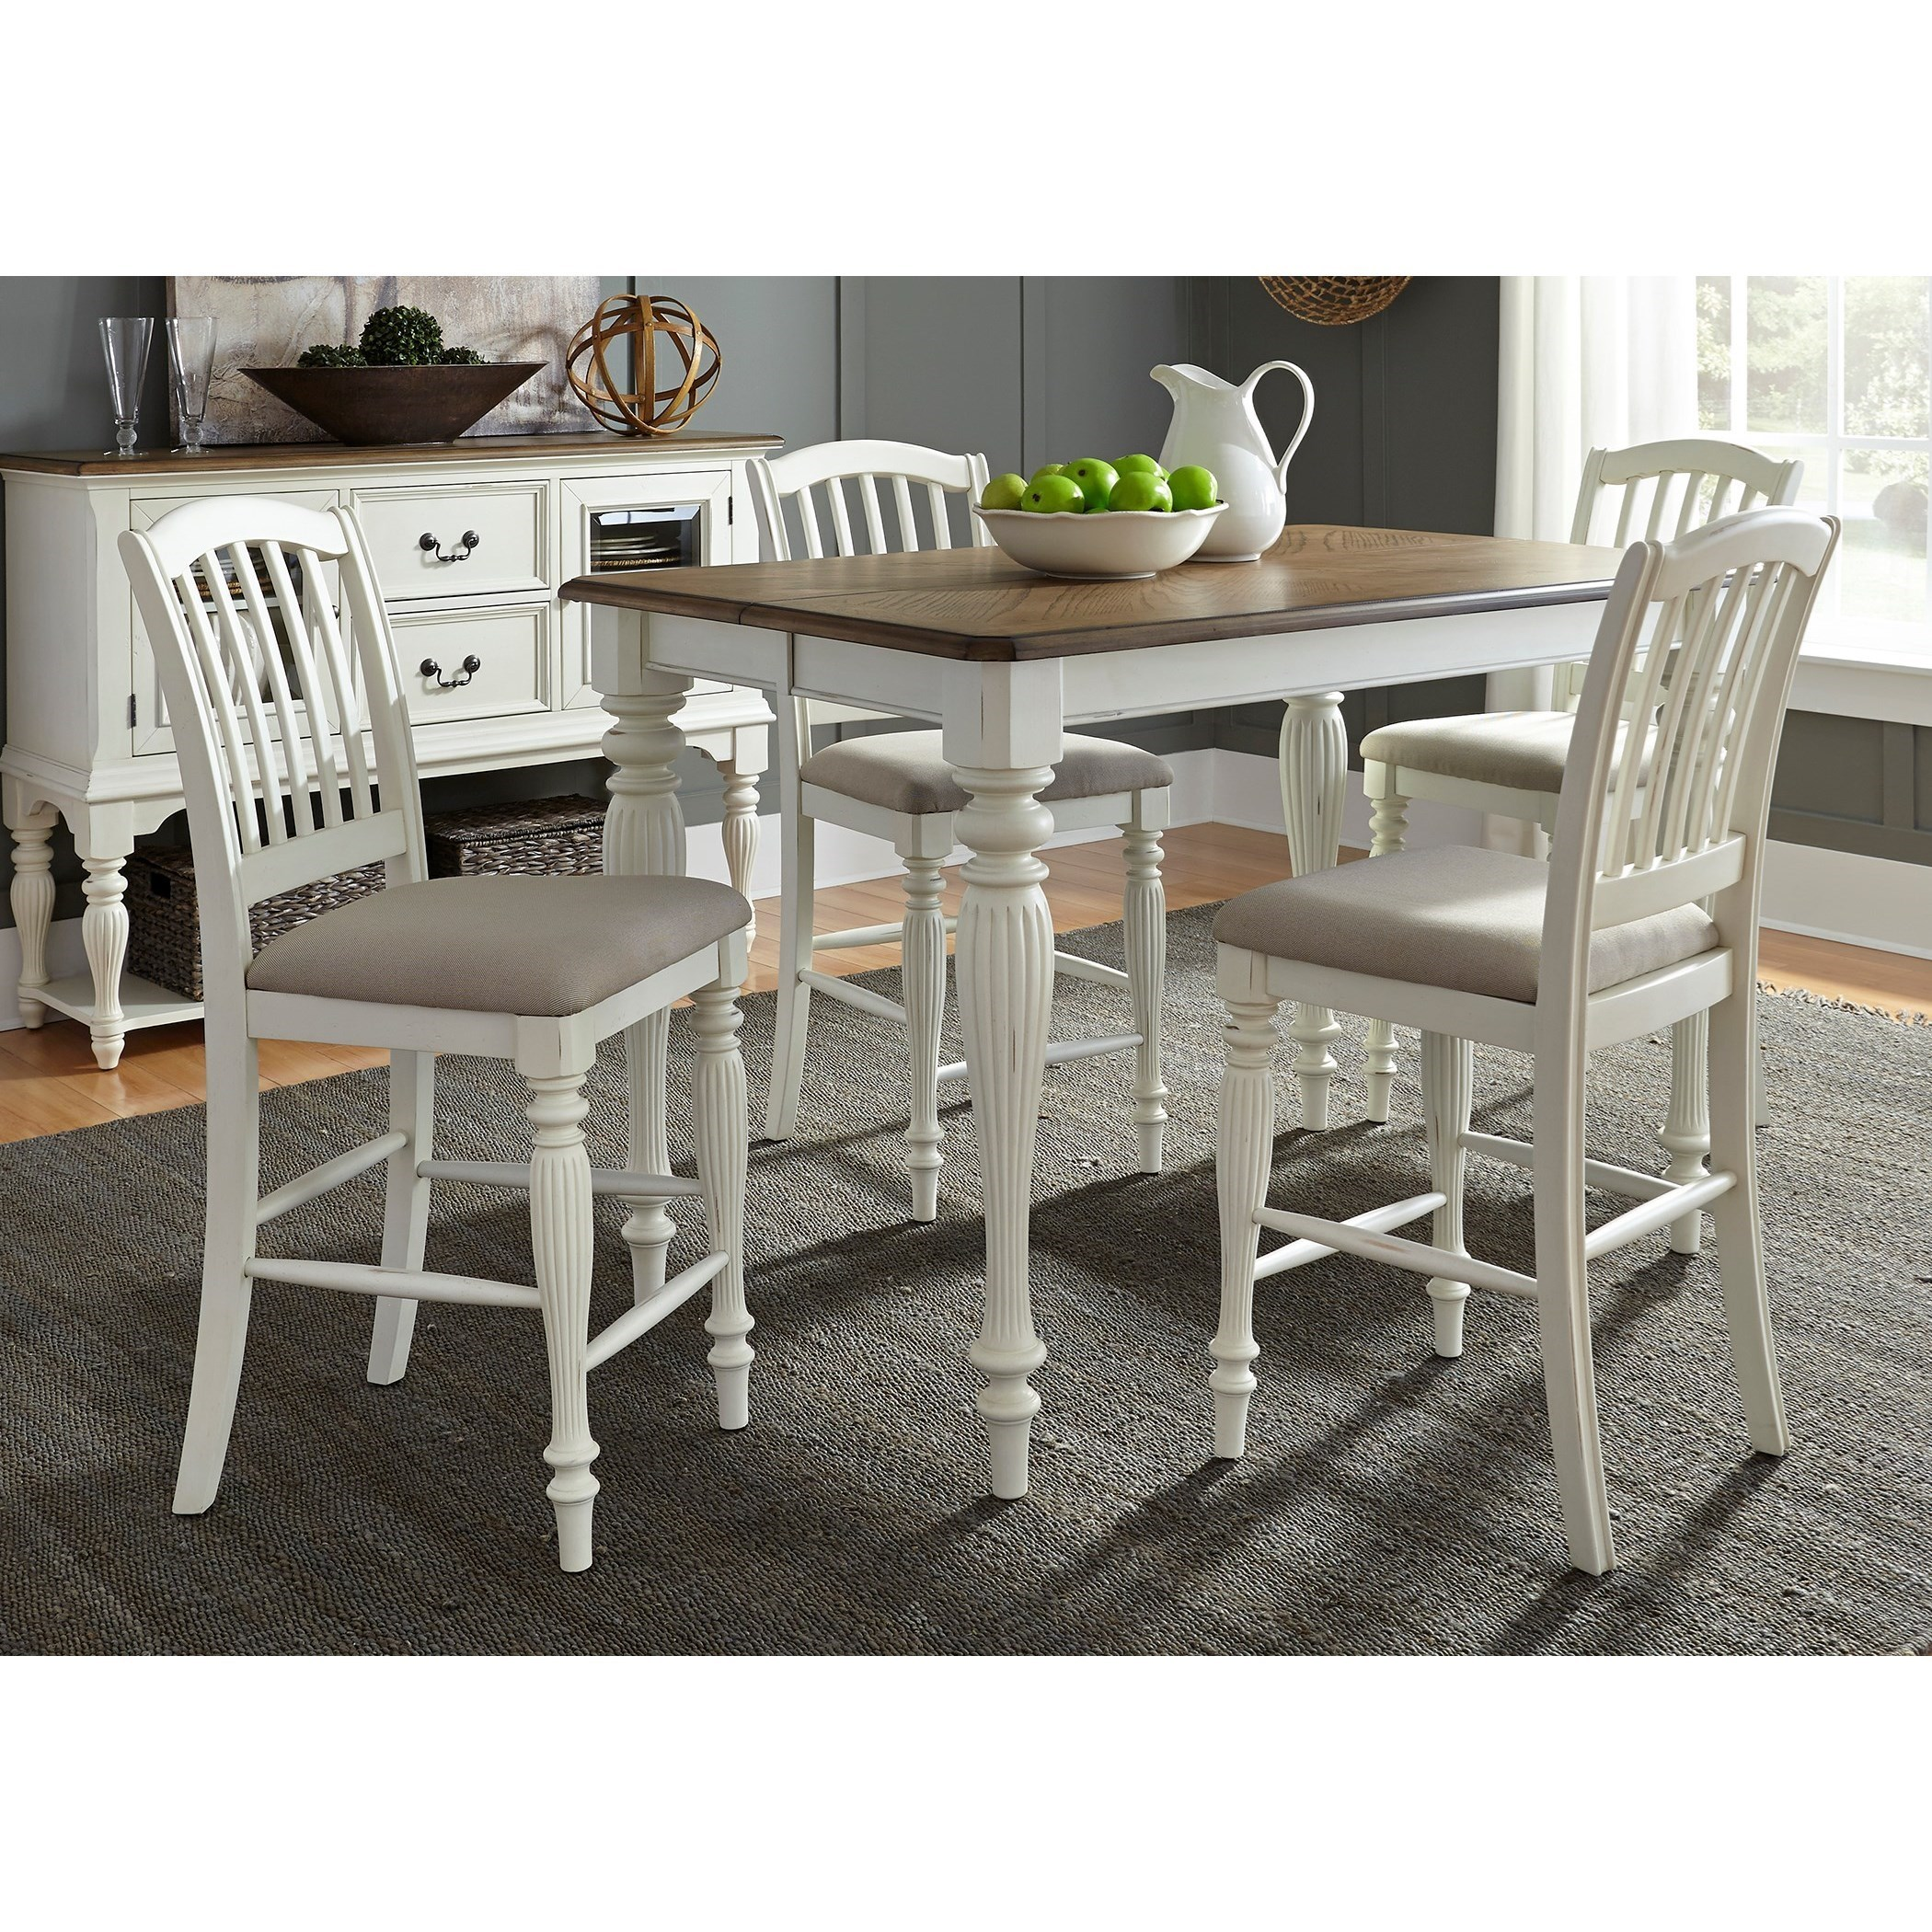 Liberty Furniture Cumberland Creek Dining 5 Piece Gathering Table Set  sc 1 st  Zaku0027s Furniture & Liberty Furniture Cumberland Creek Dining 5 Piece Gathering Table ...